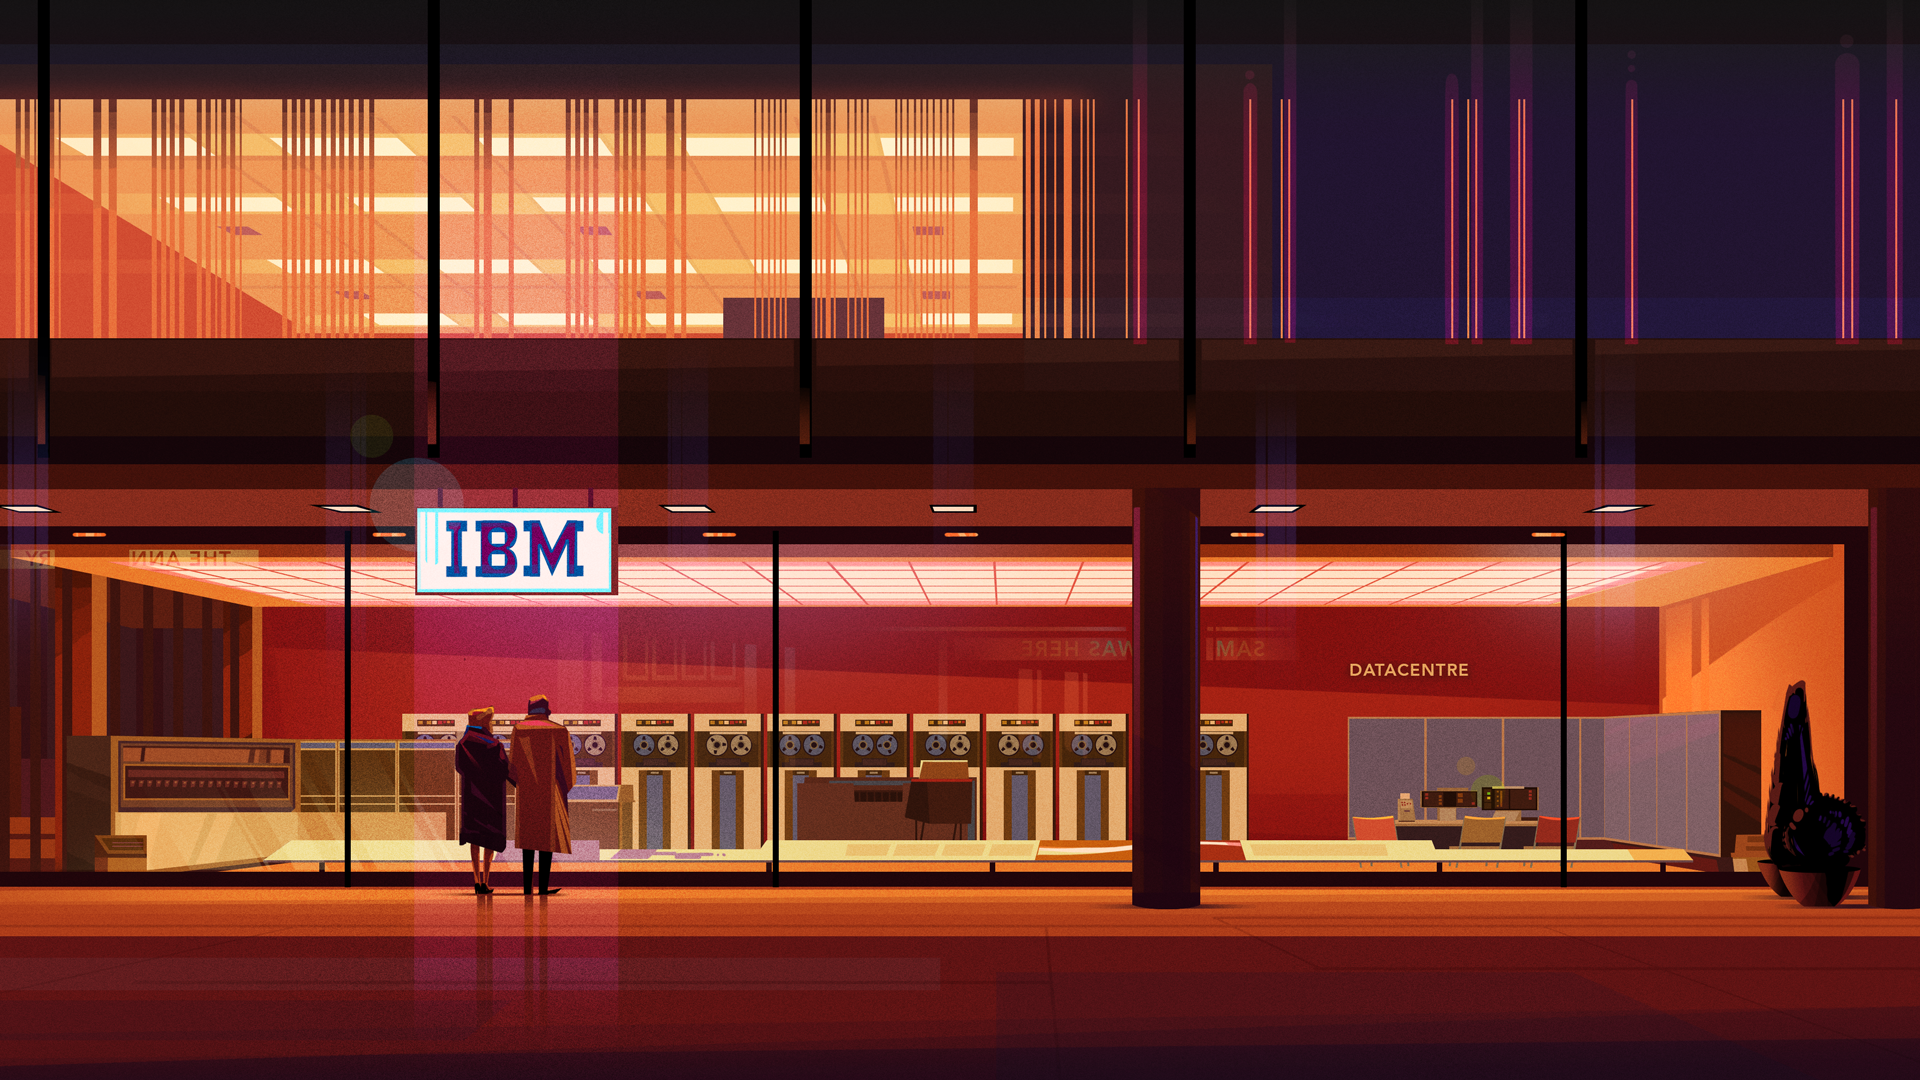 IBM Datacentre